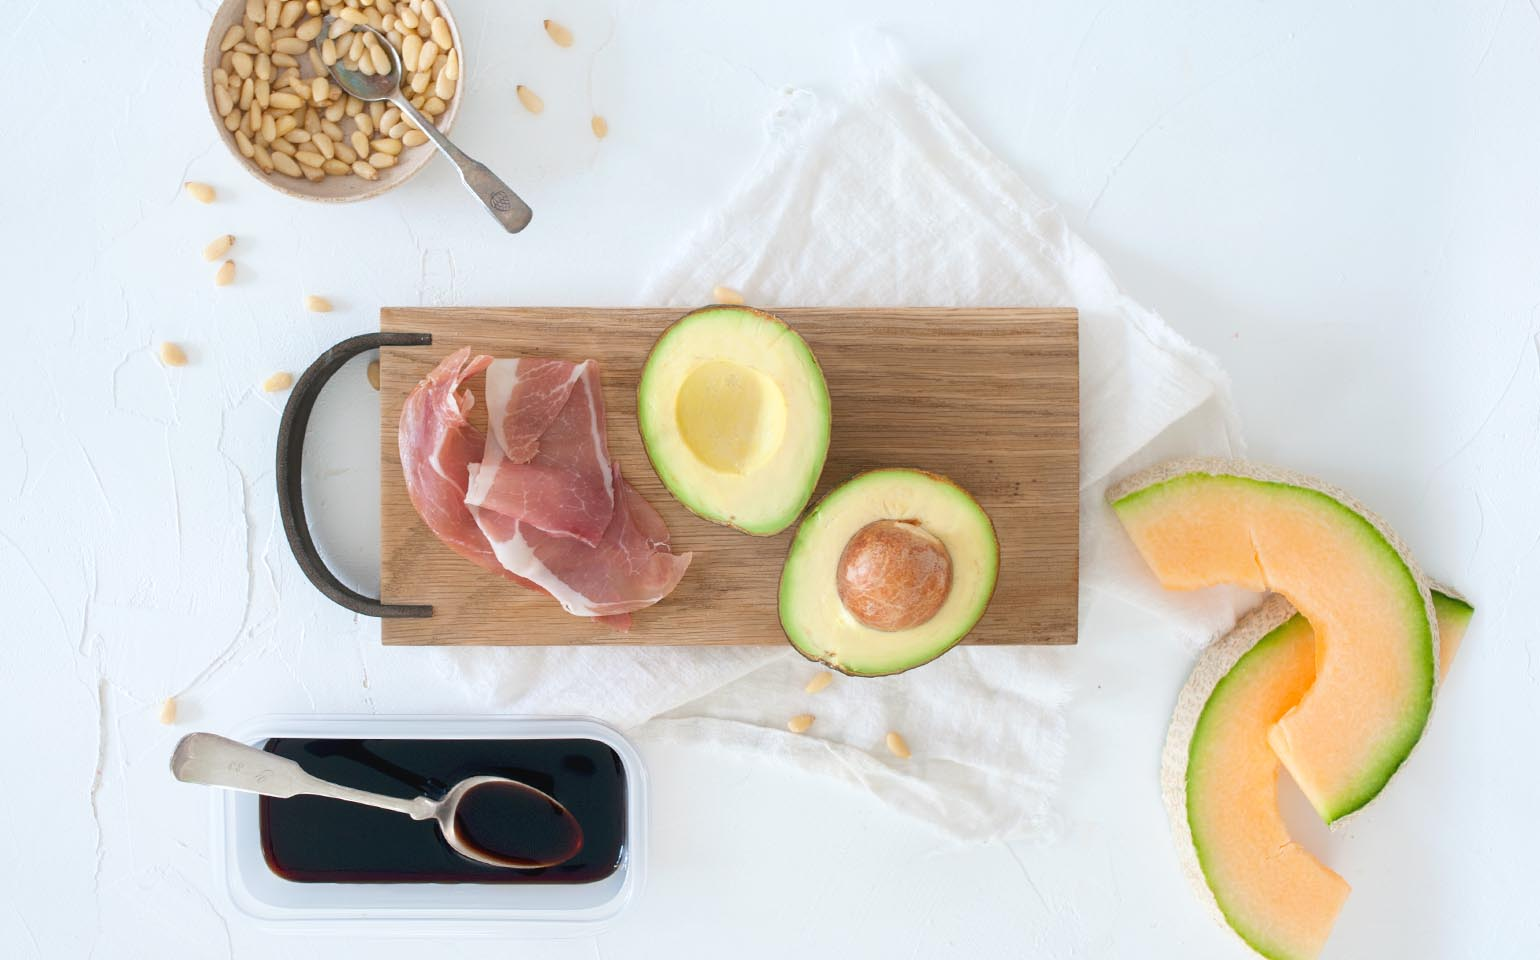 Melon and Avocado Dip with Prosciutto